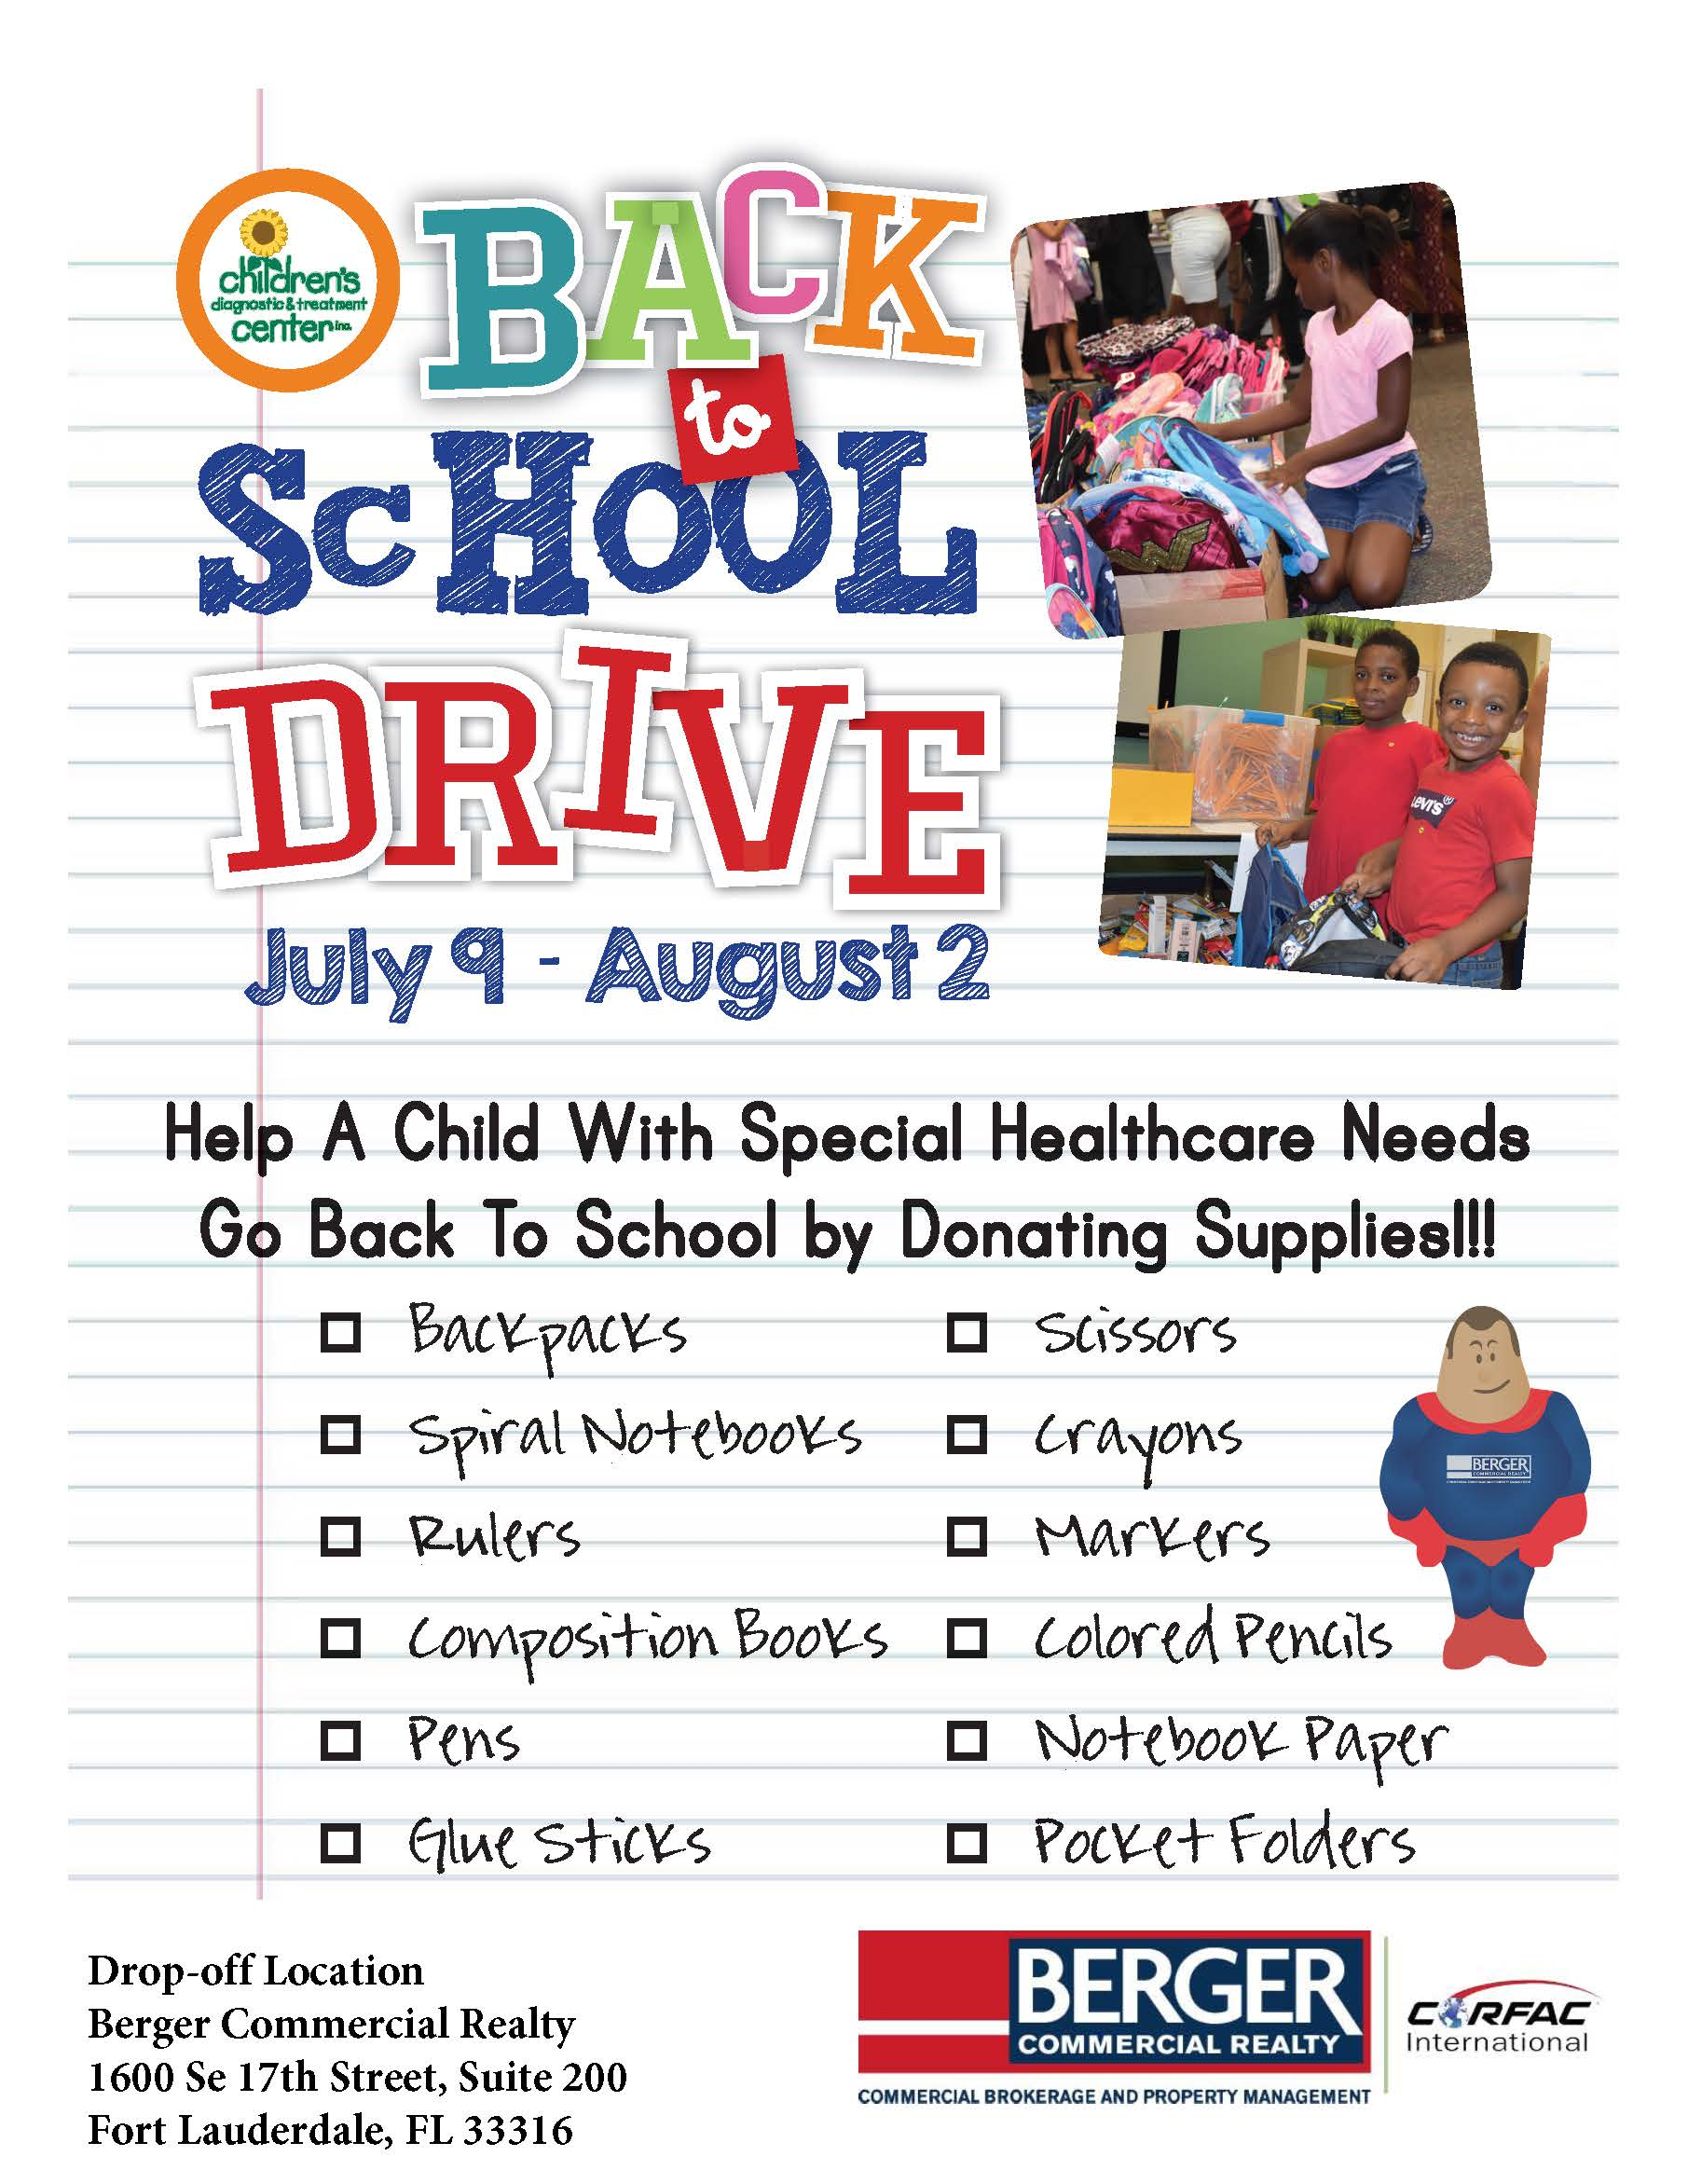 Berger Commercial Realty Holds Back To School Drive For CDTC